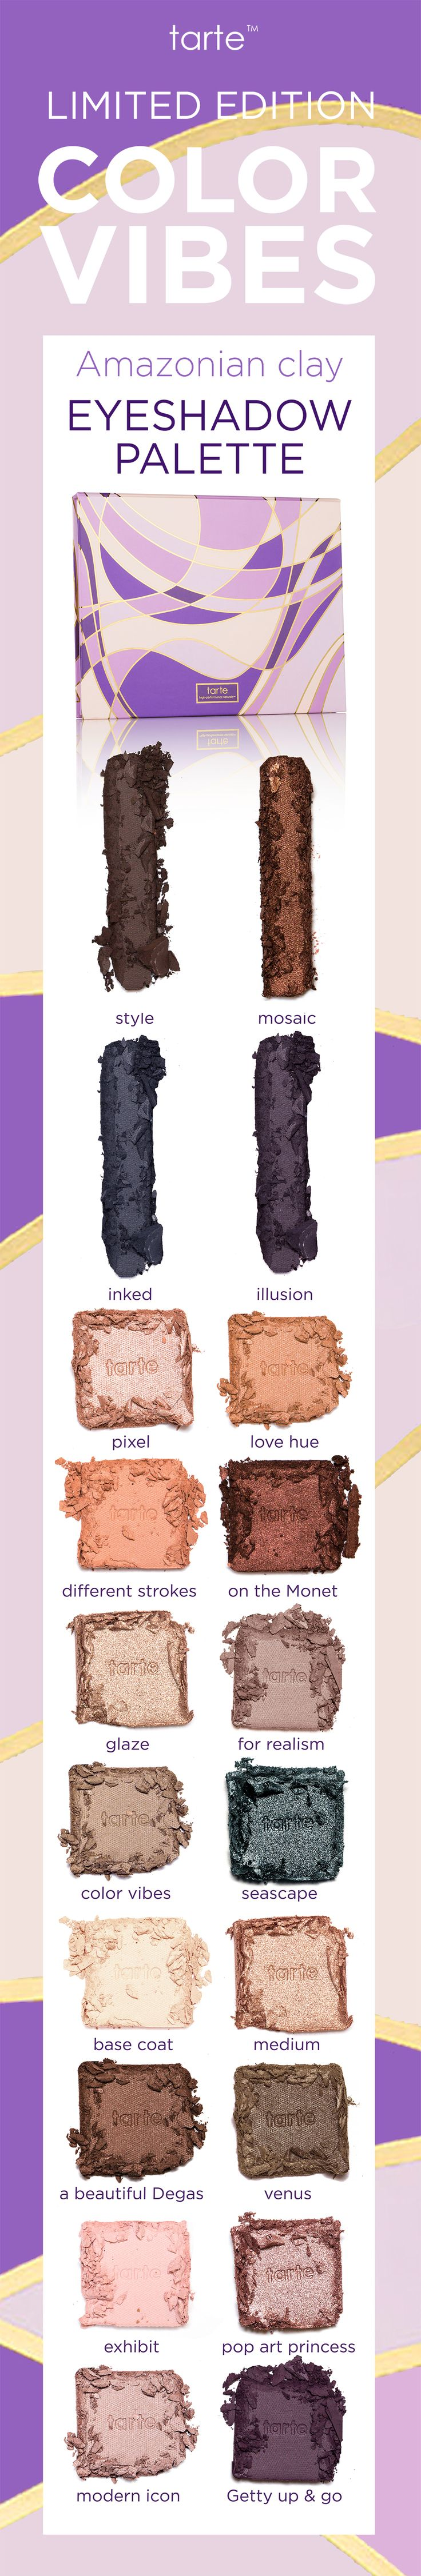 Go from work to play with our limited-edition color vibes Amazonian clay eyeshadow palette! 16 pigment-packed shadows and 4 rich liner shades to create the perfect look for every occasion! #tartecosmetics #worksoftarte